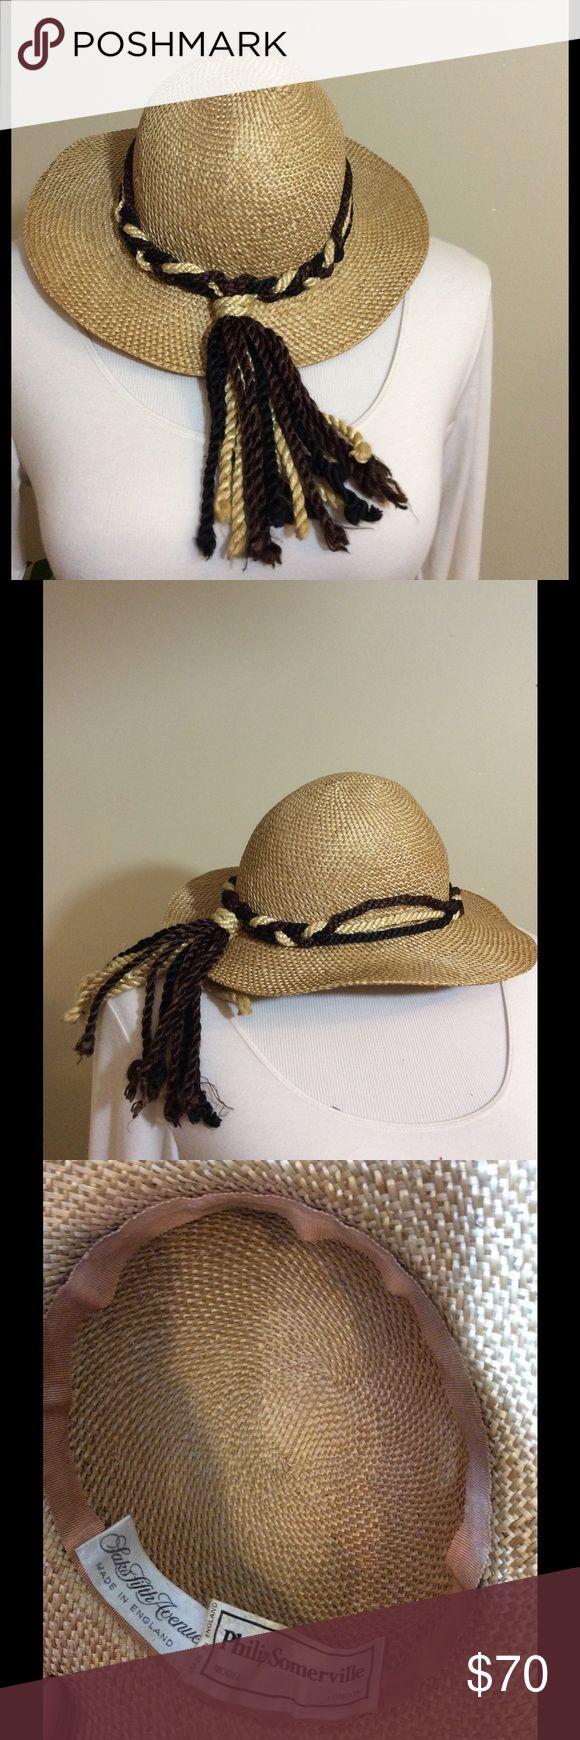 "PHILIP SOMERVILLE VINTAGE STRAW HAT TASSELS UK Make this yours for Spring/Summer! One of a kind vintage Philip Somerville for Saks Fifth Avenue Straw Wide Brim wedding, race, beach, day party hat. Made in England w/ tassels. Basically like new condition.   The Measurements: Head ""opening"" is 7"" across Hat Brim is 3"" Saks Fifth Avenue Accessories Hats"